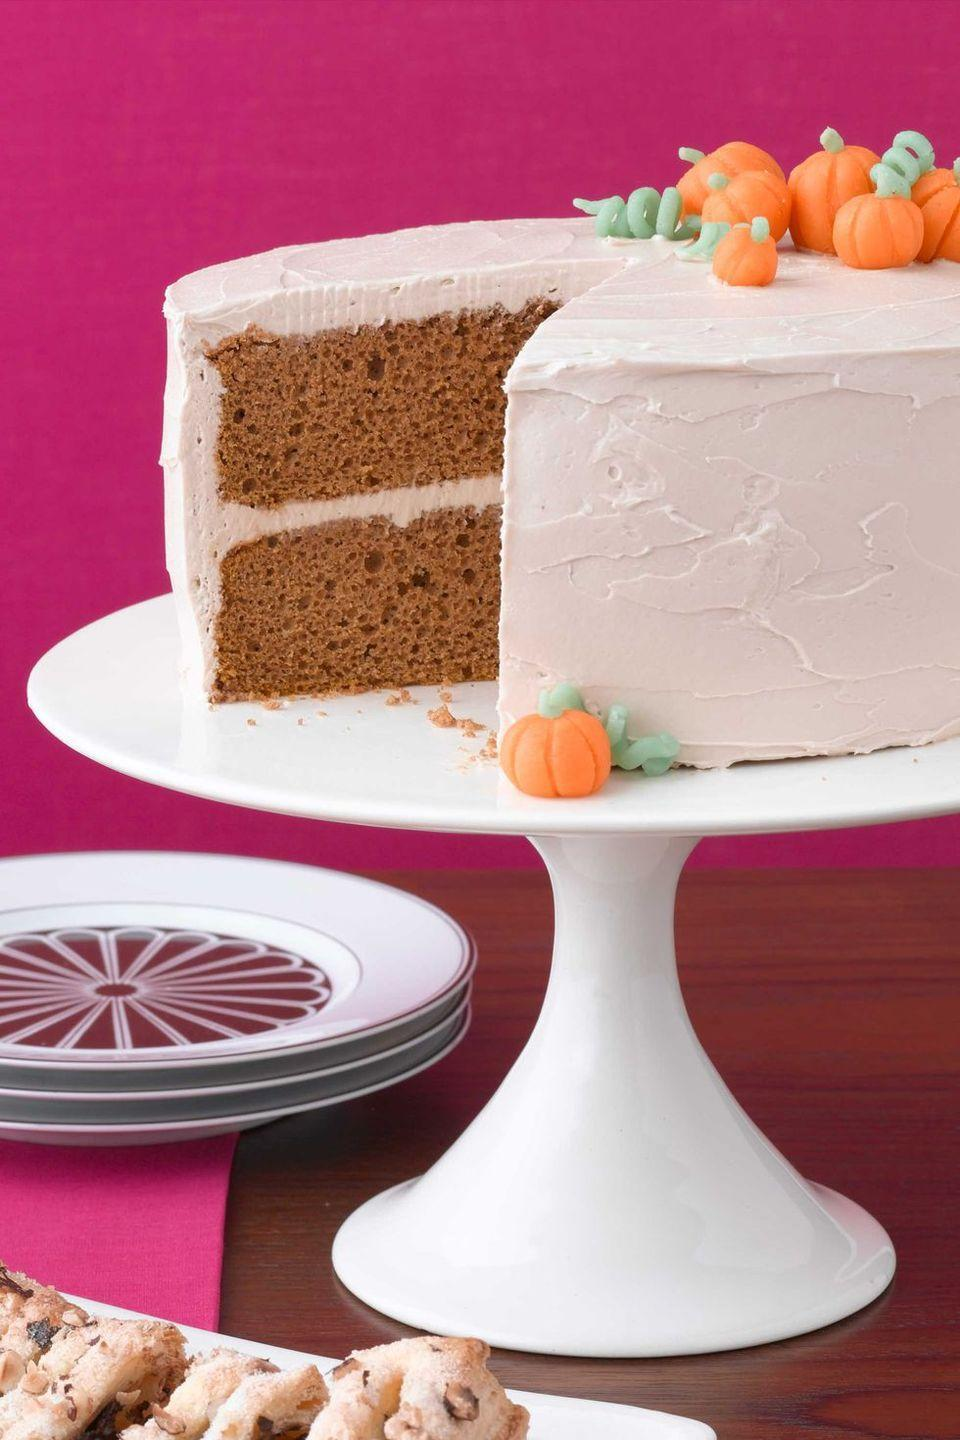 "<p>Guests will love cutting into this simple, yet delicious <a href=""https://www.womansday.com/food-recipes/food-drinks/g2498/pumpkin-cakes/"" rel=""nofollow noopener"" target=""_blank"" data-ylk=""slk:pumpkin spice cake"" class=""link rapid-noclick-resp"">pumpkin spice cake</a>. The marshmallow cream and maple extract frosting take it over the top, while pumpkin candy garnishes add a festive touch. </p><p><strong><em><a href=""https://www.womansday.com/food-recipes/food-drinks/recipes/a10565/pumpkin-spice-cake-121554/"" rel=""nofollow noopener"" target=""_blank"" data-ylk=""slk:Get the Pumpkin Spice Cake recipe."" class=""link rapid-noclick-resp"">Get the Pumpkin Spice Cake recipe. </a></em></strong></p>"